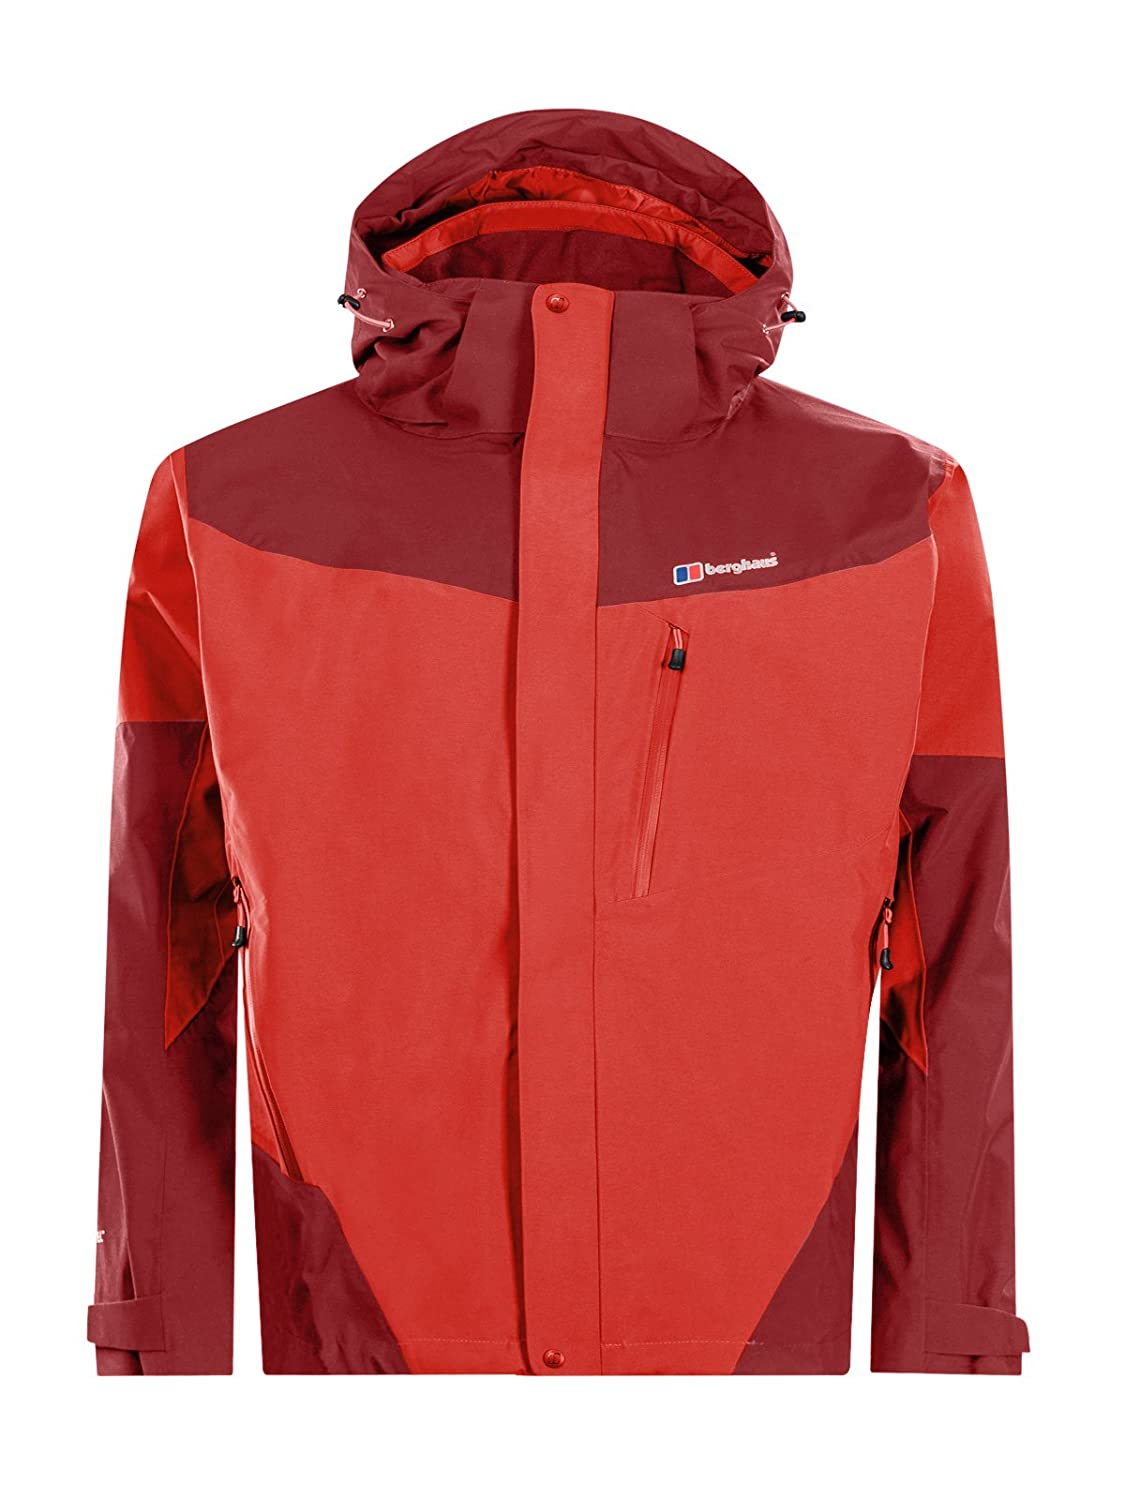 Berghaus Men's Arran Waterproof Jacket